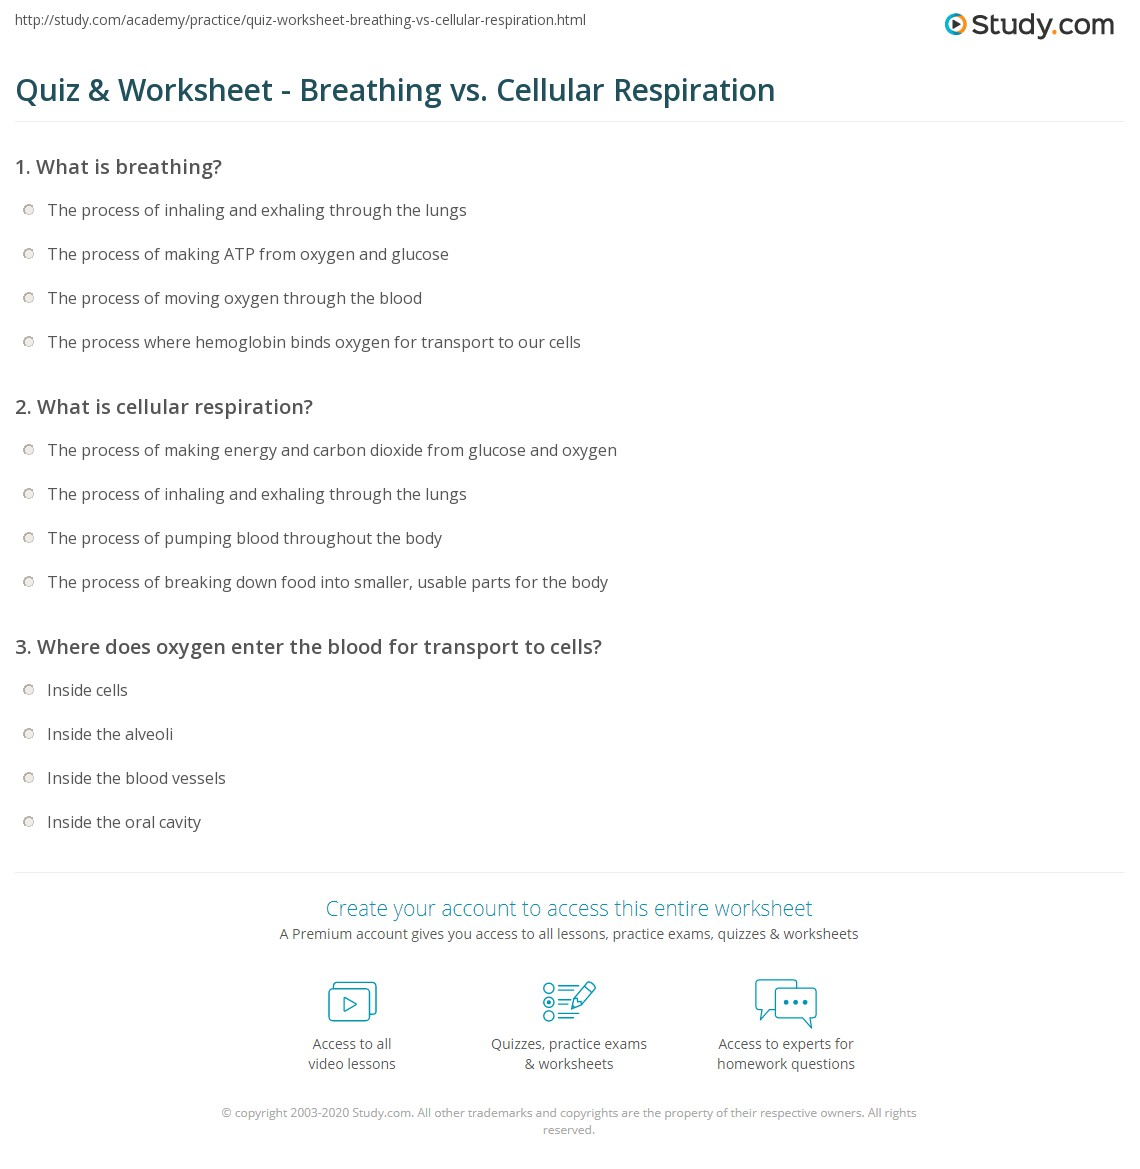 Quiz Worksheet Breathing vs Cellular Respiration – Cellular Respiration Worksheets